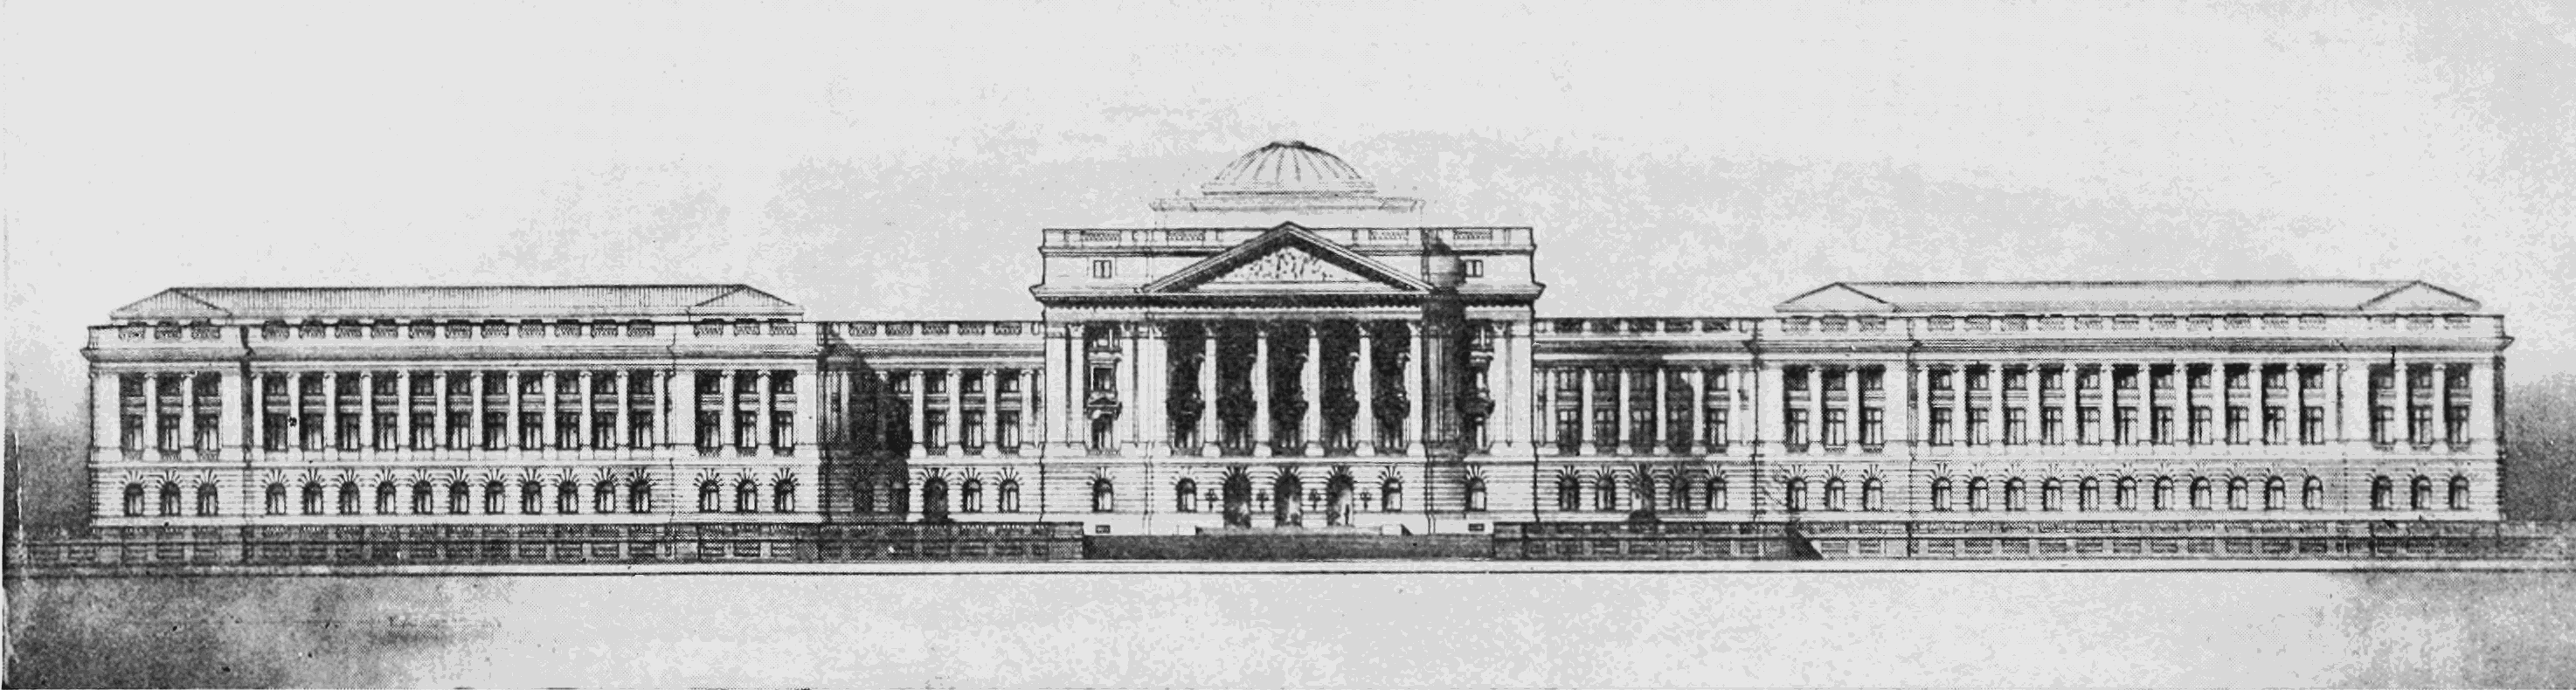 PSM V64 D482 New us dept of agriculture building.png